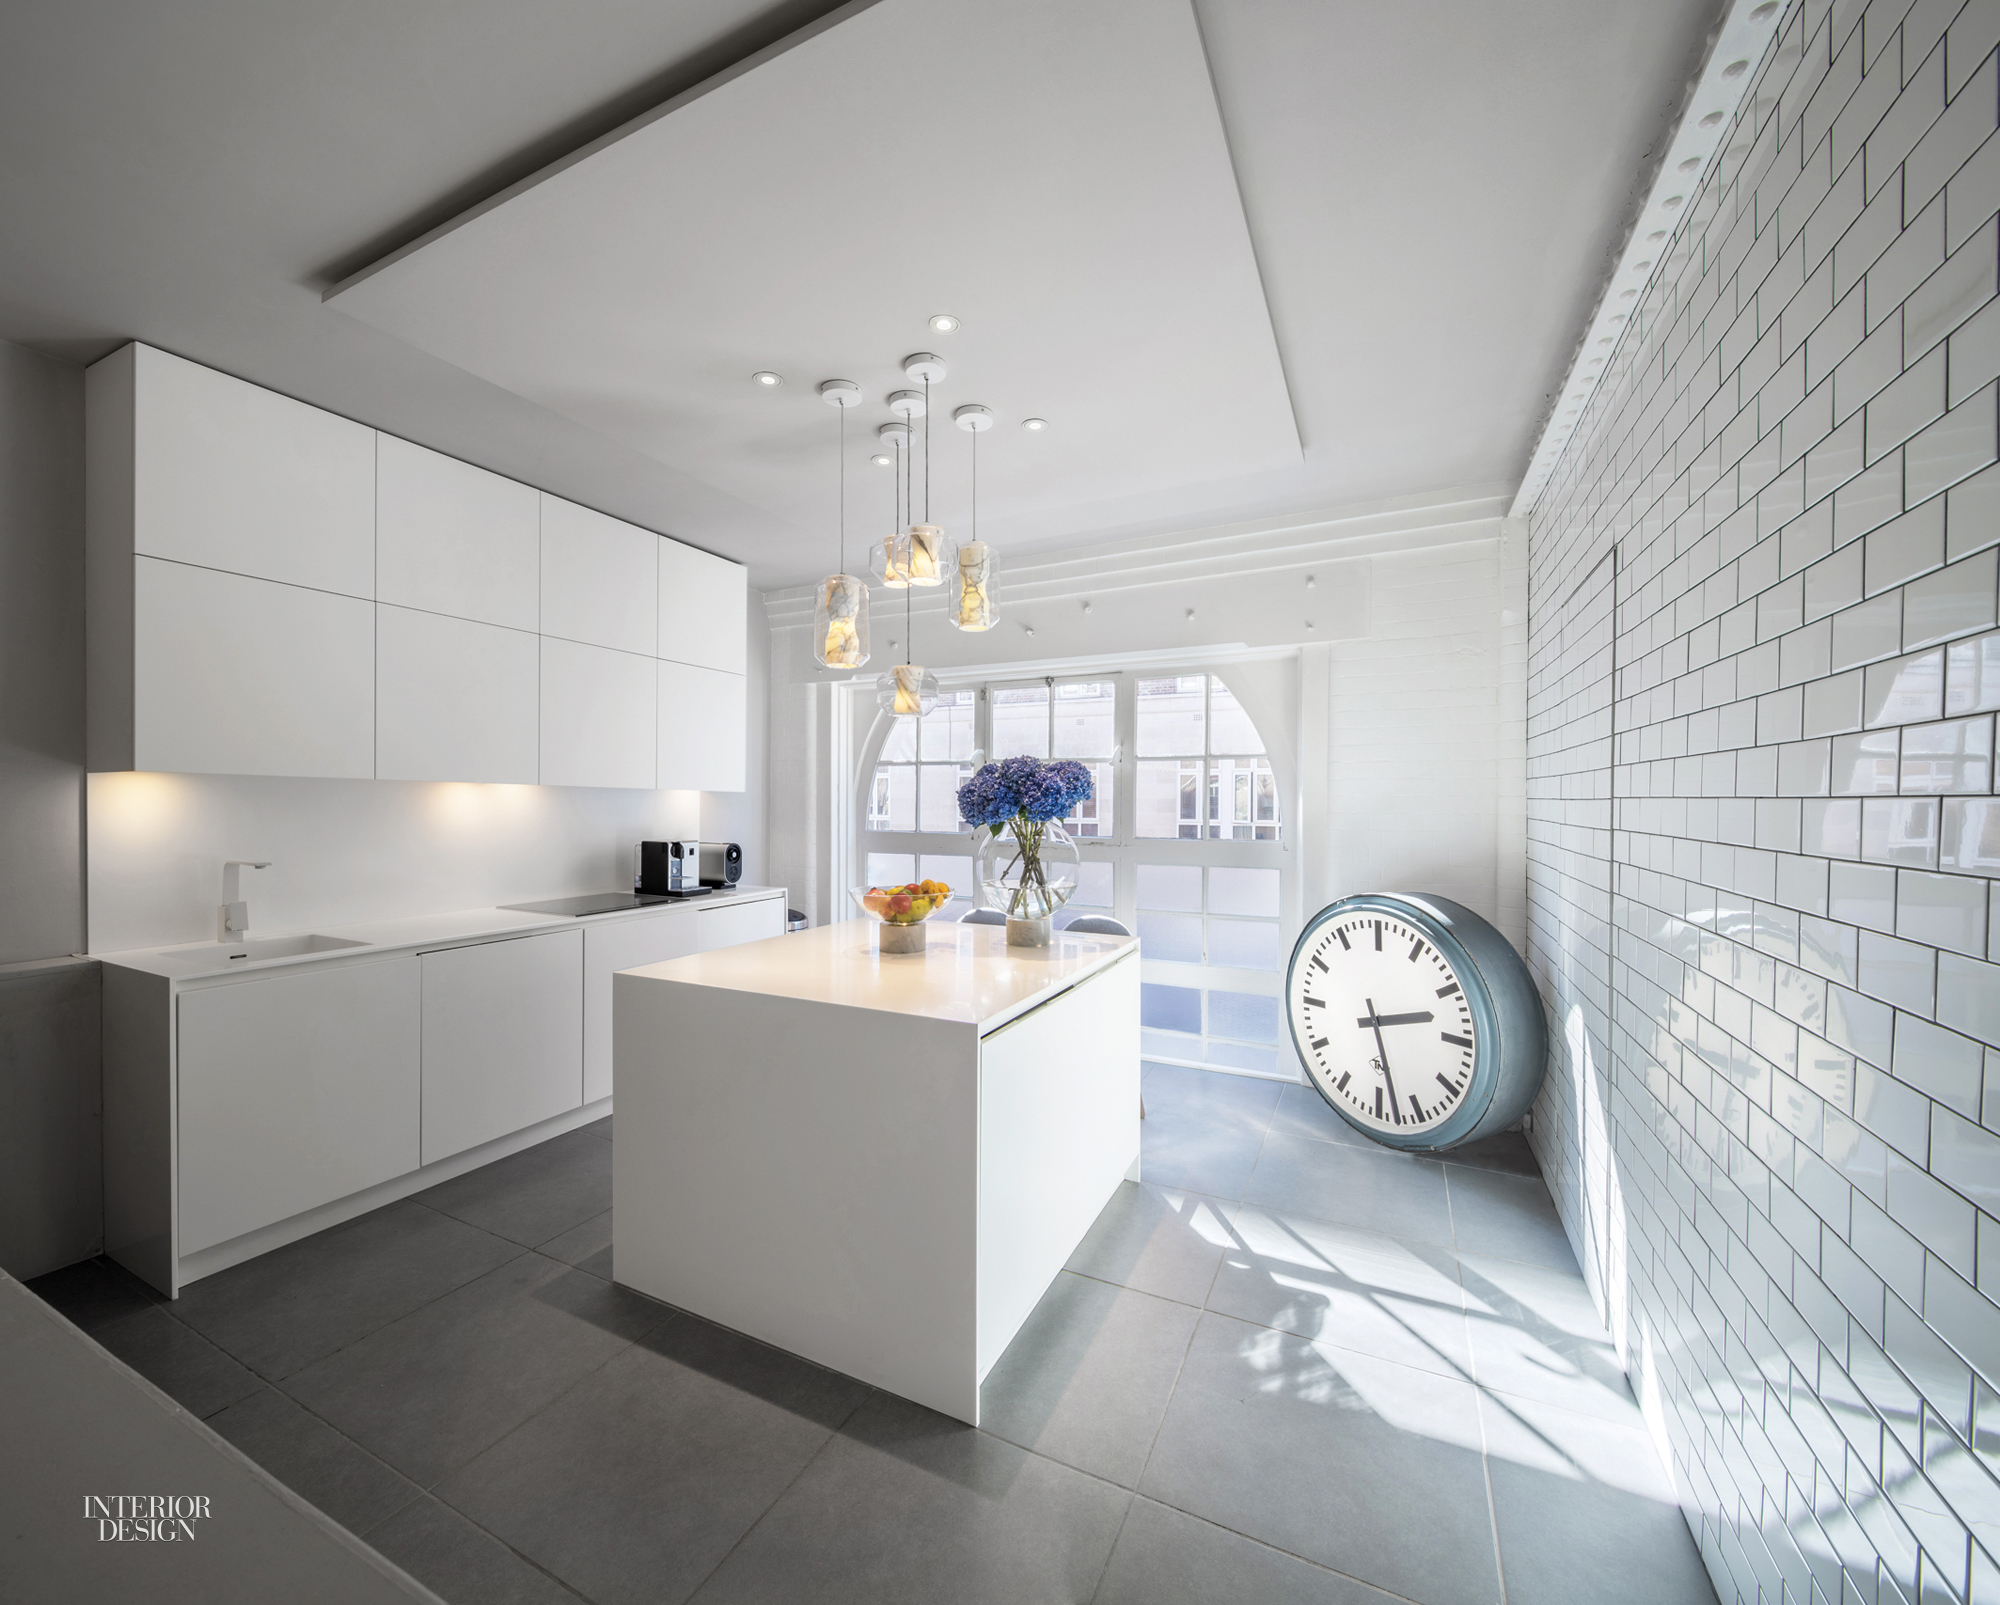 Lee Broom S South London Flat Exemplifies His Design Vision